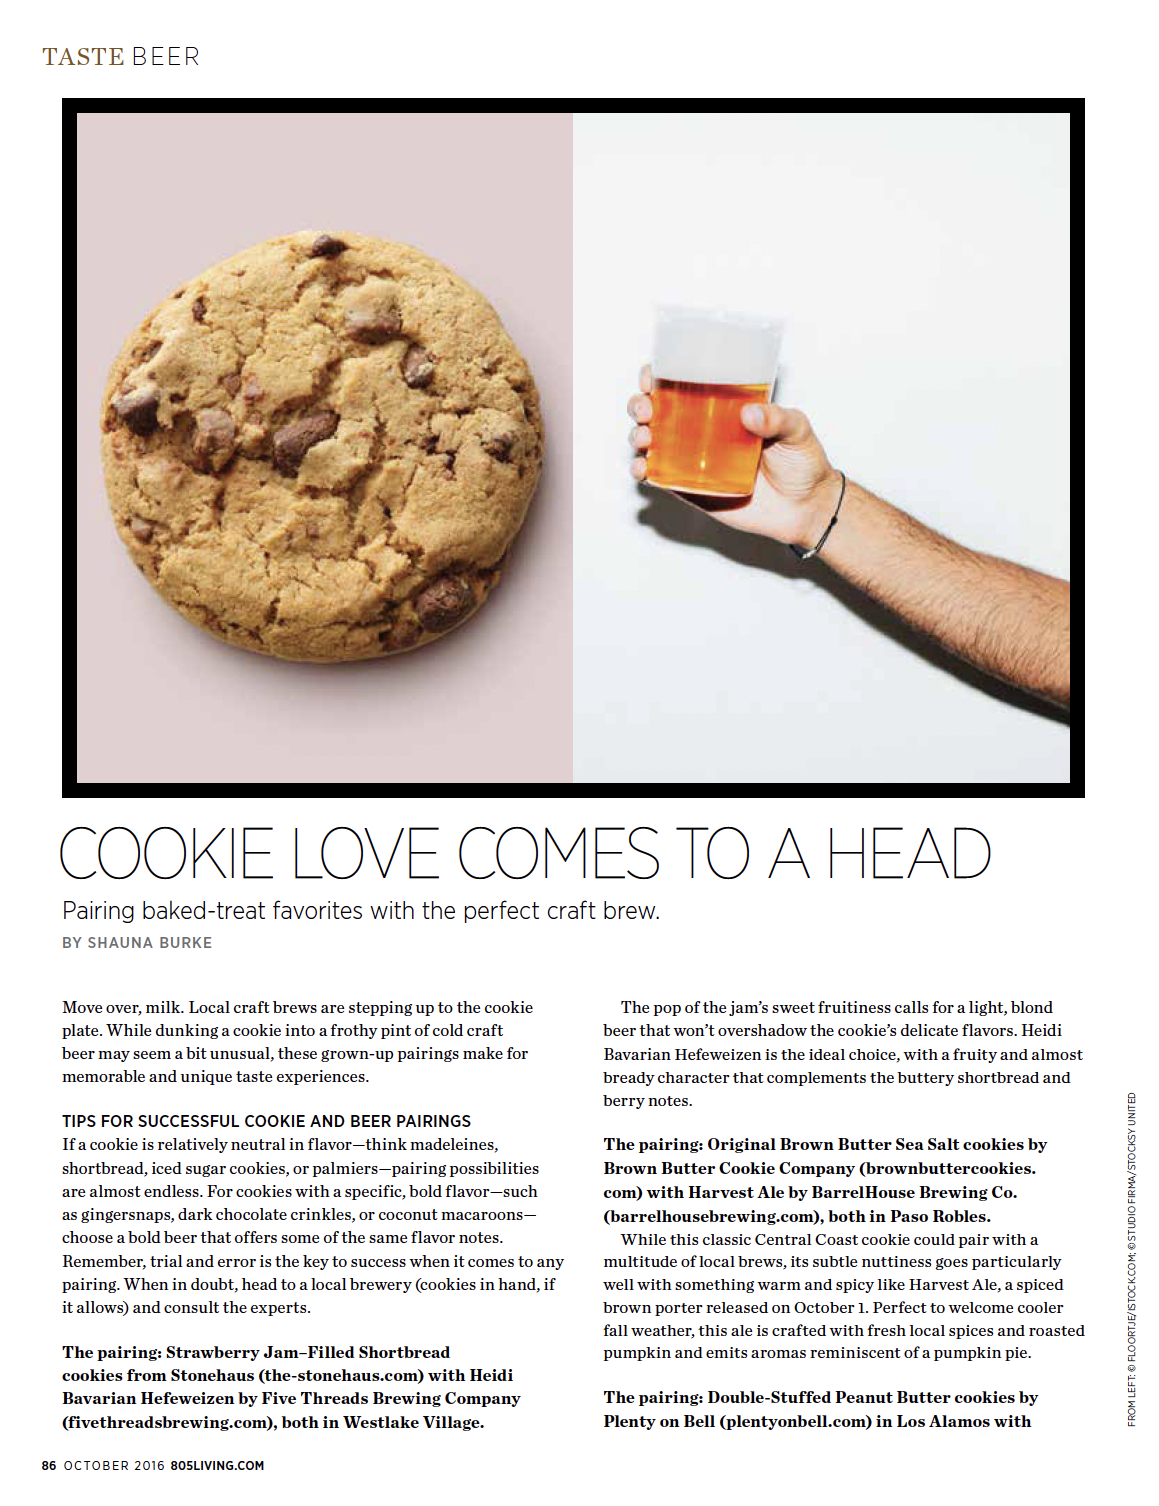 Cookie Love Comes to a Head / 805 Living